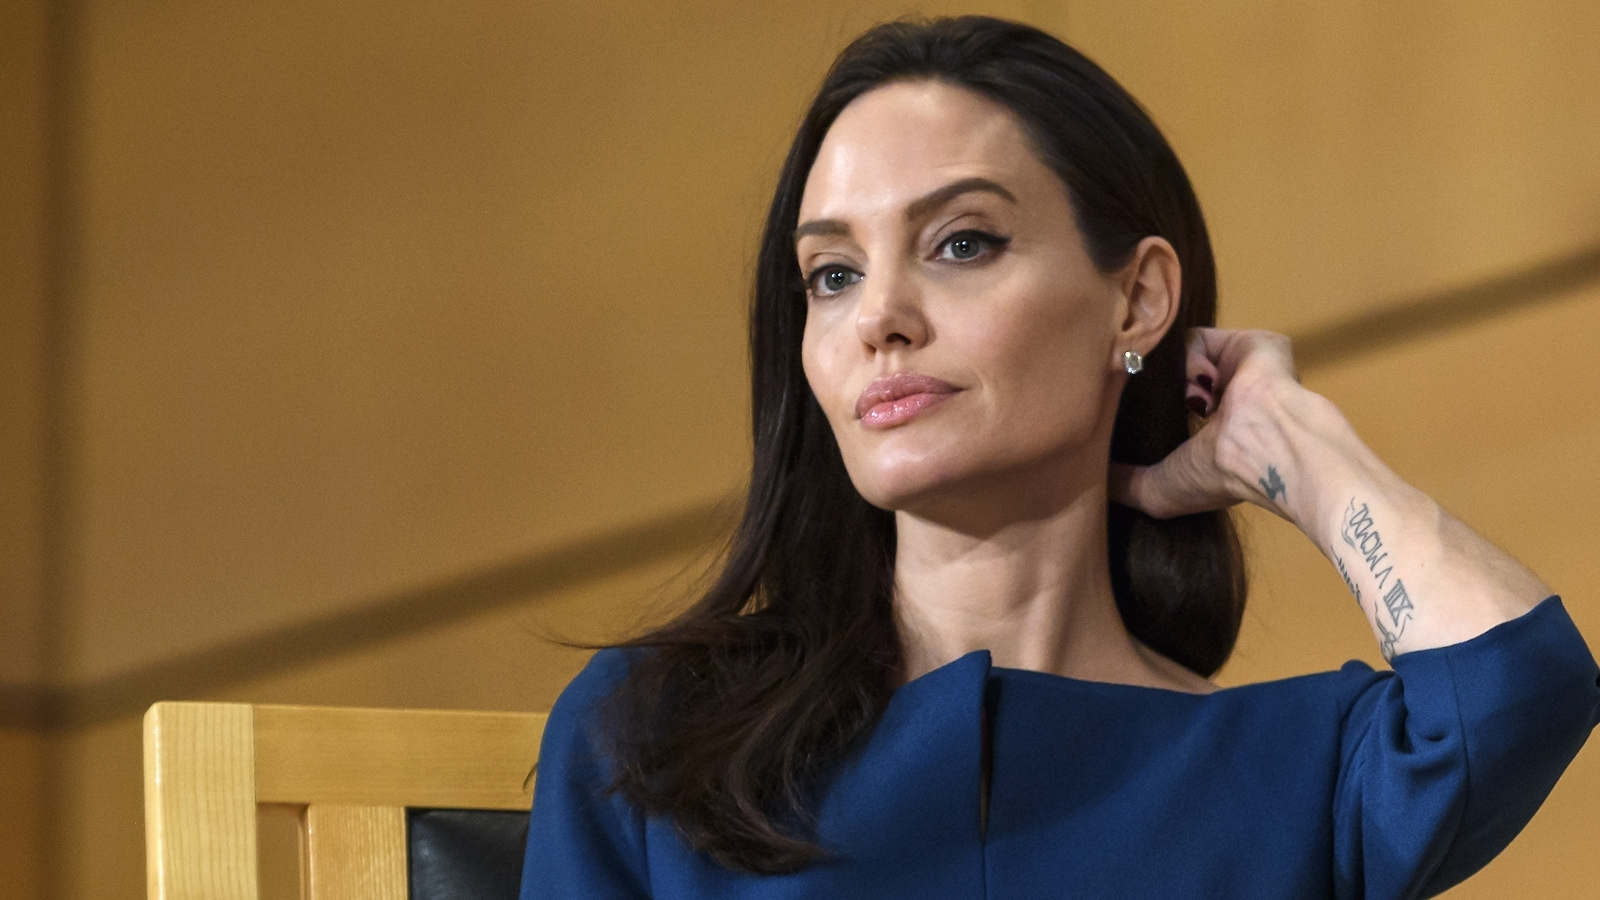 Angelina Jolie's 'First They Killed My Father' premieres in NY